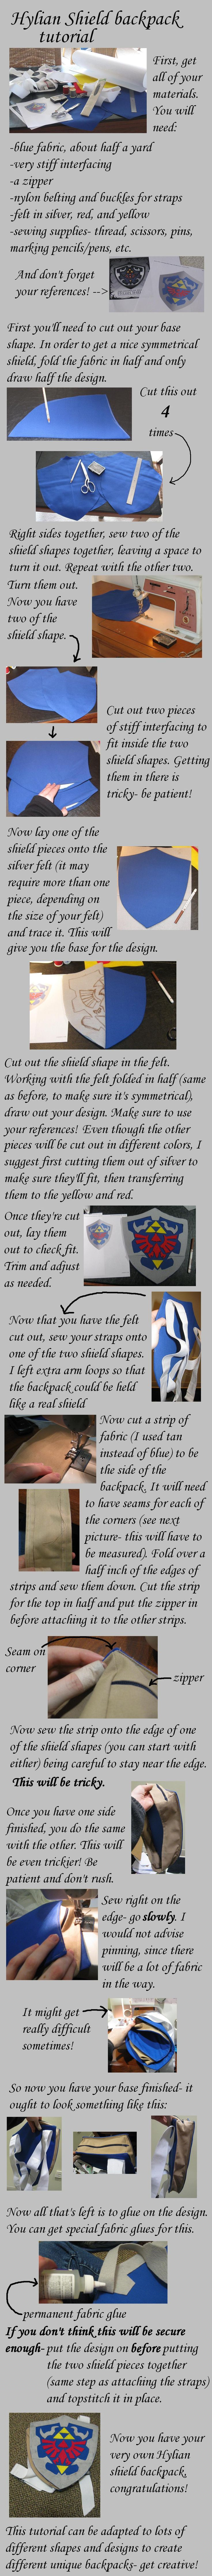 Zelda shield backpack tutorial by =Animus-Panthera on deviantART